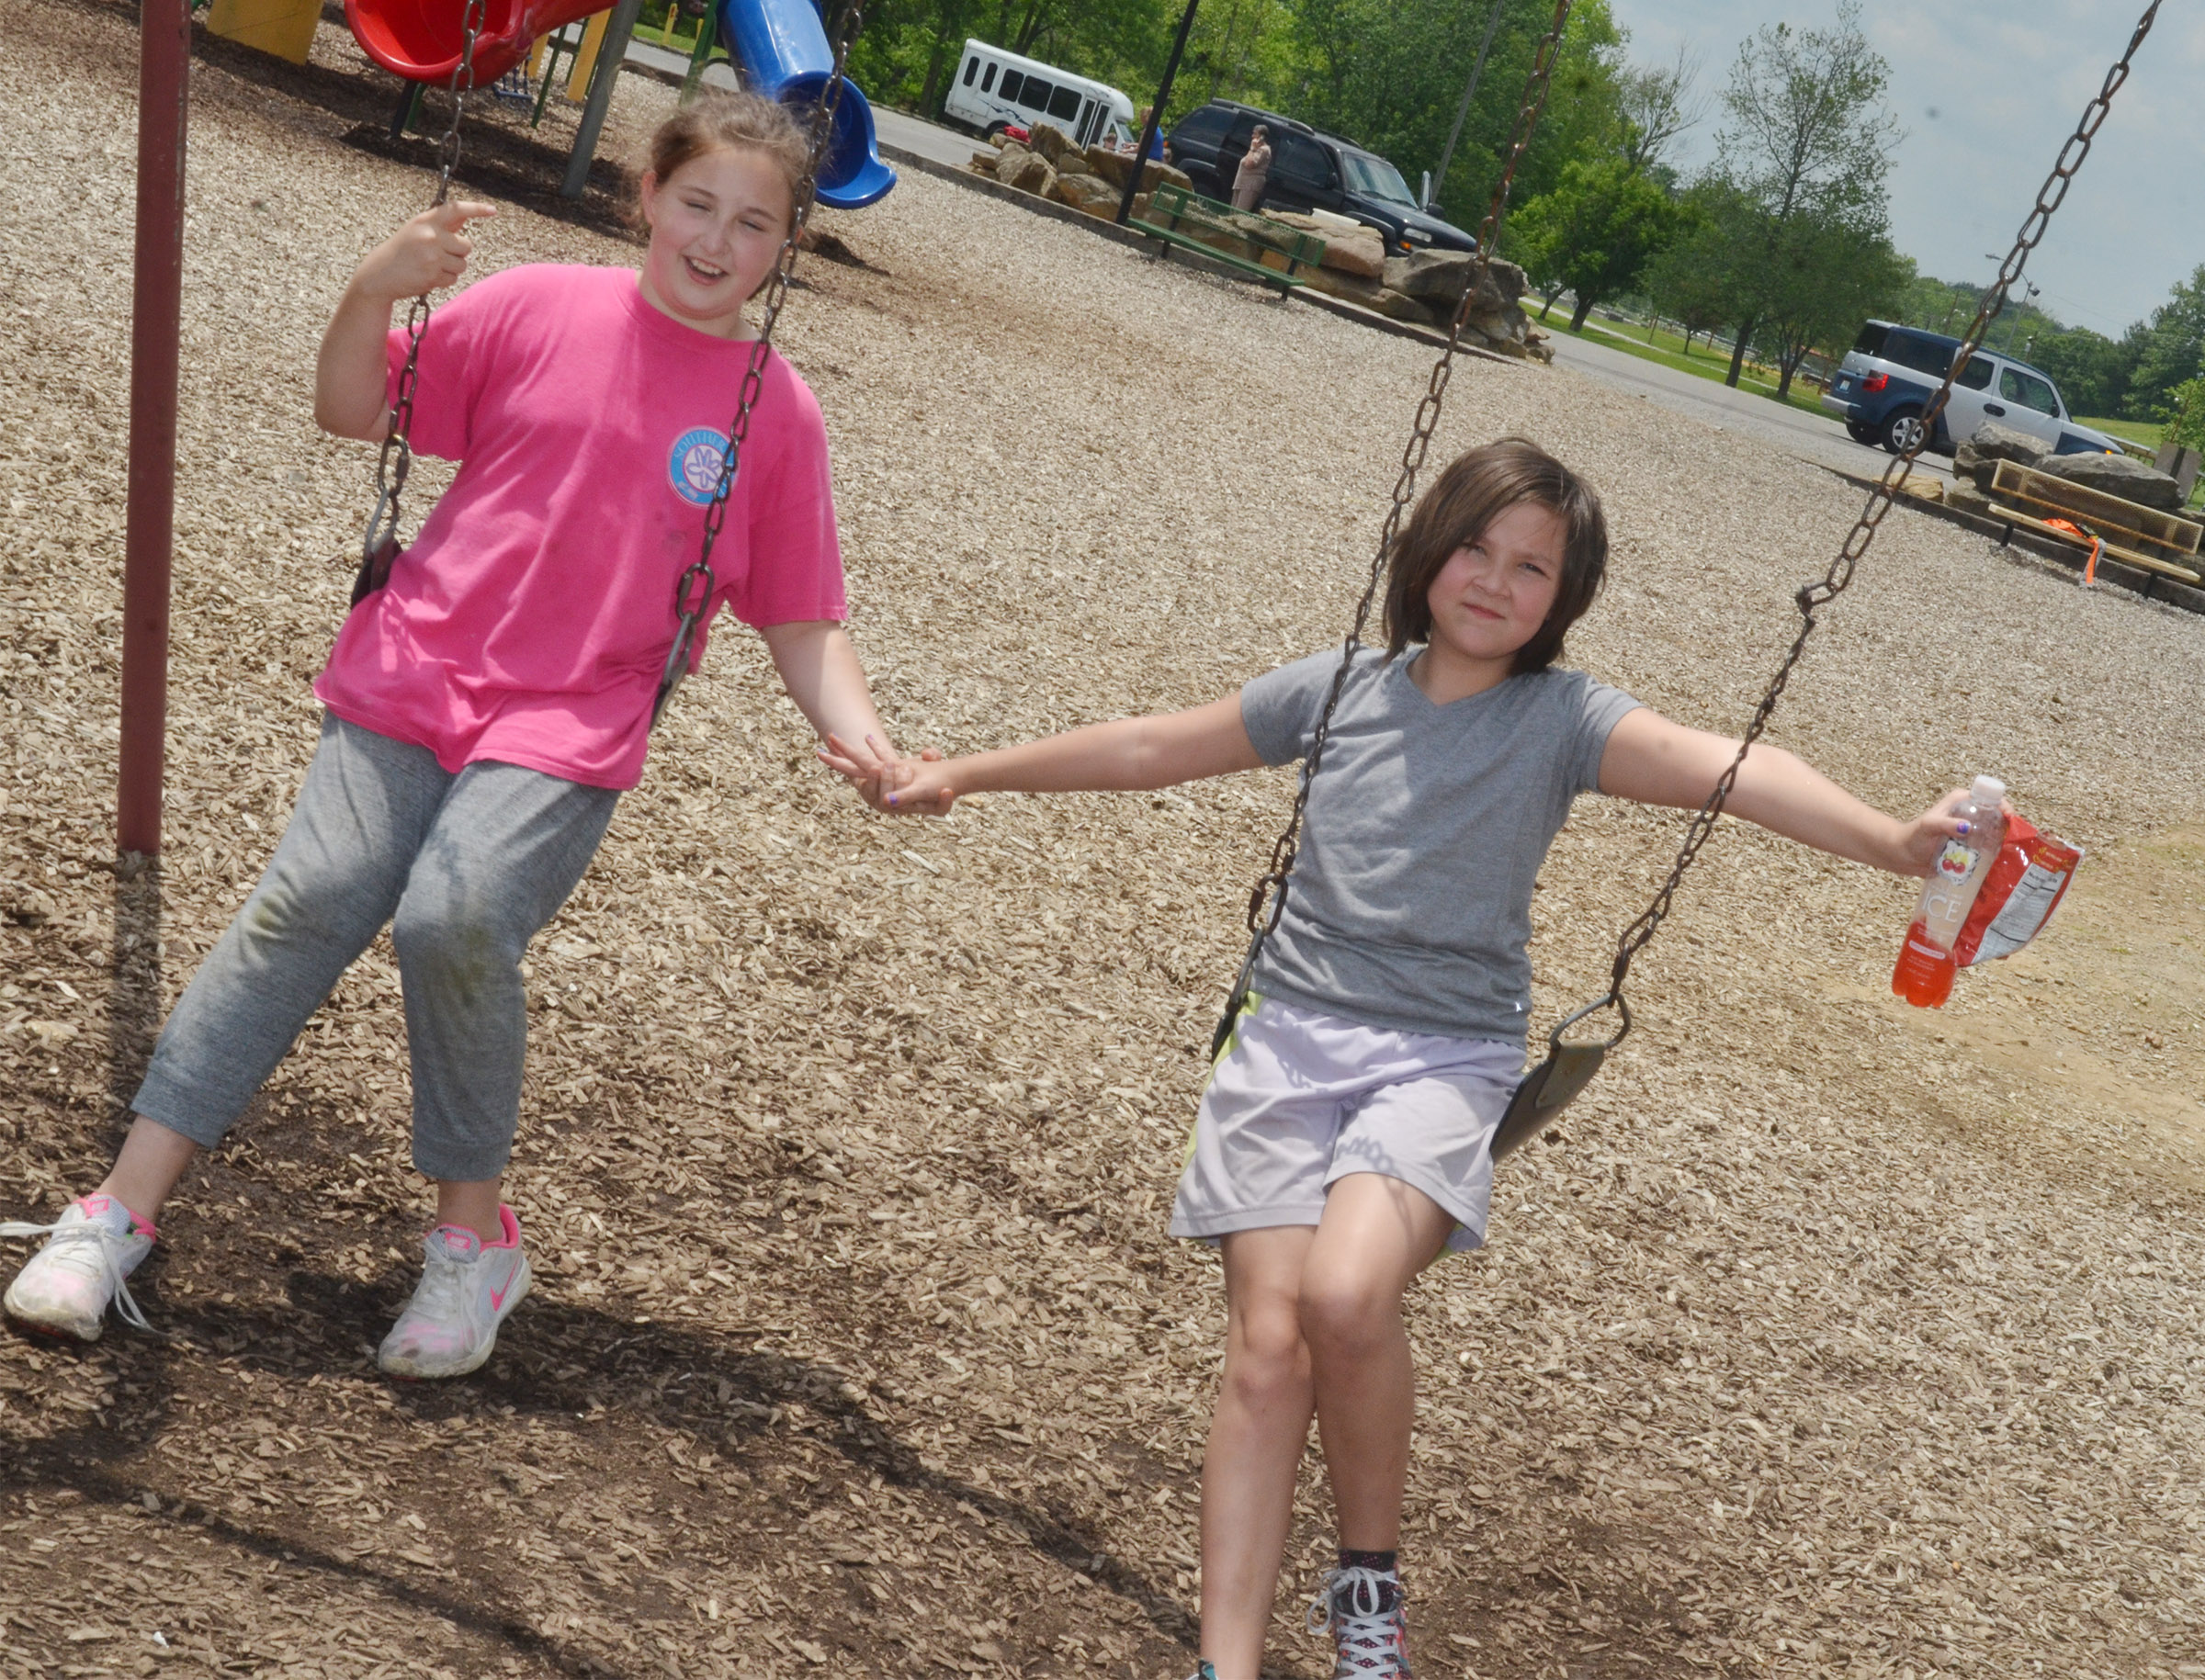 CMS fourth-graders Riley Newton, at left, and Cassie Crick swing together.